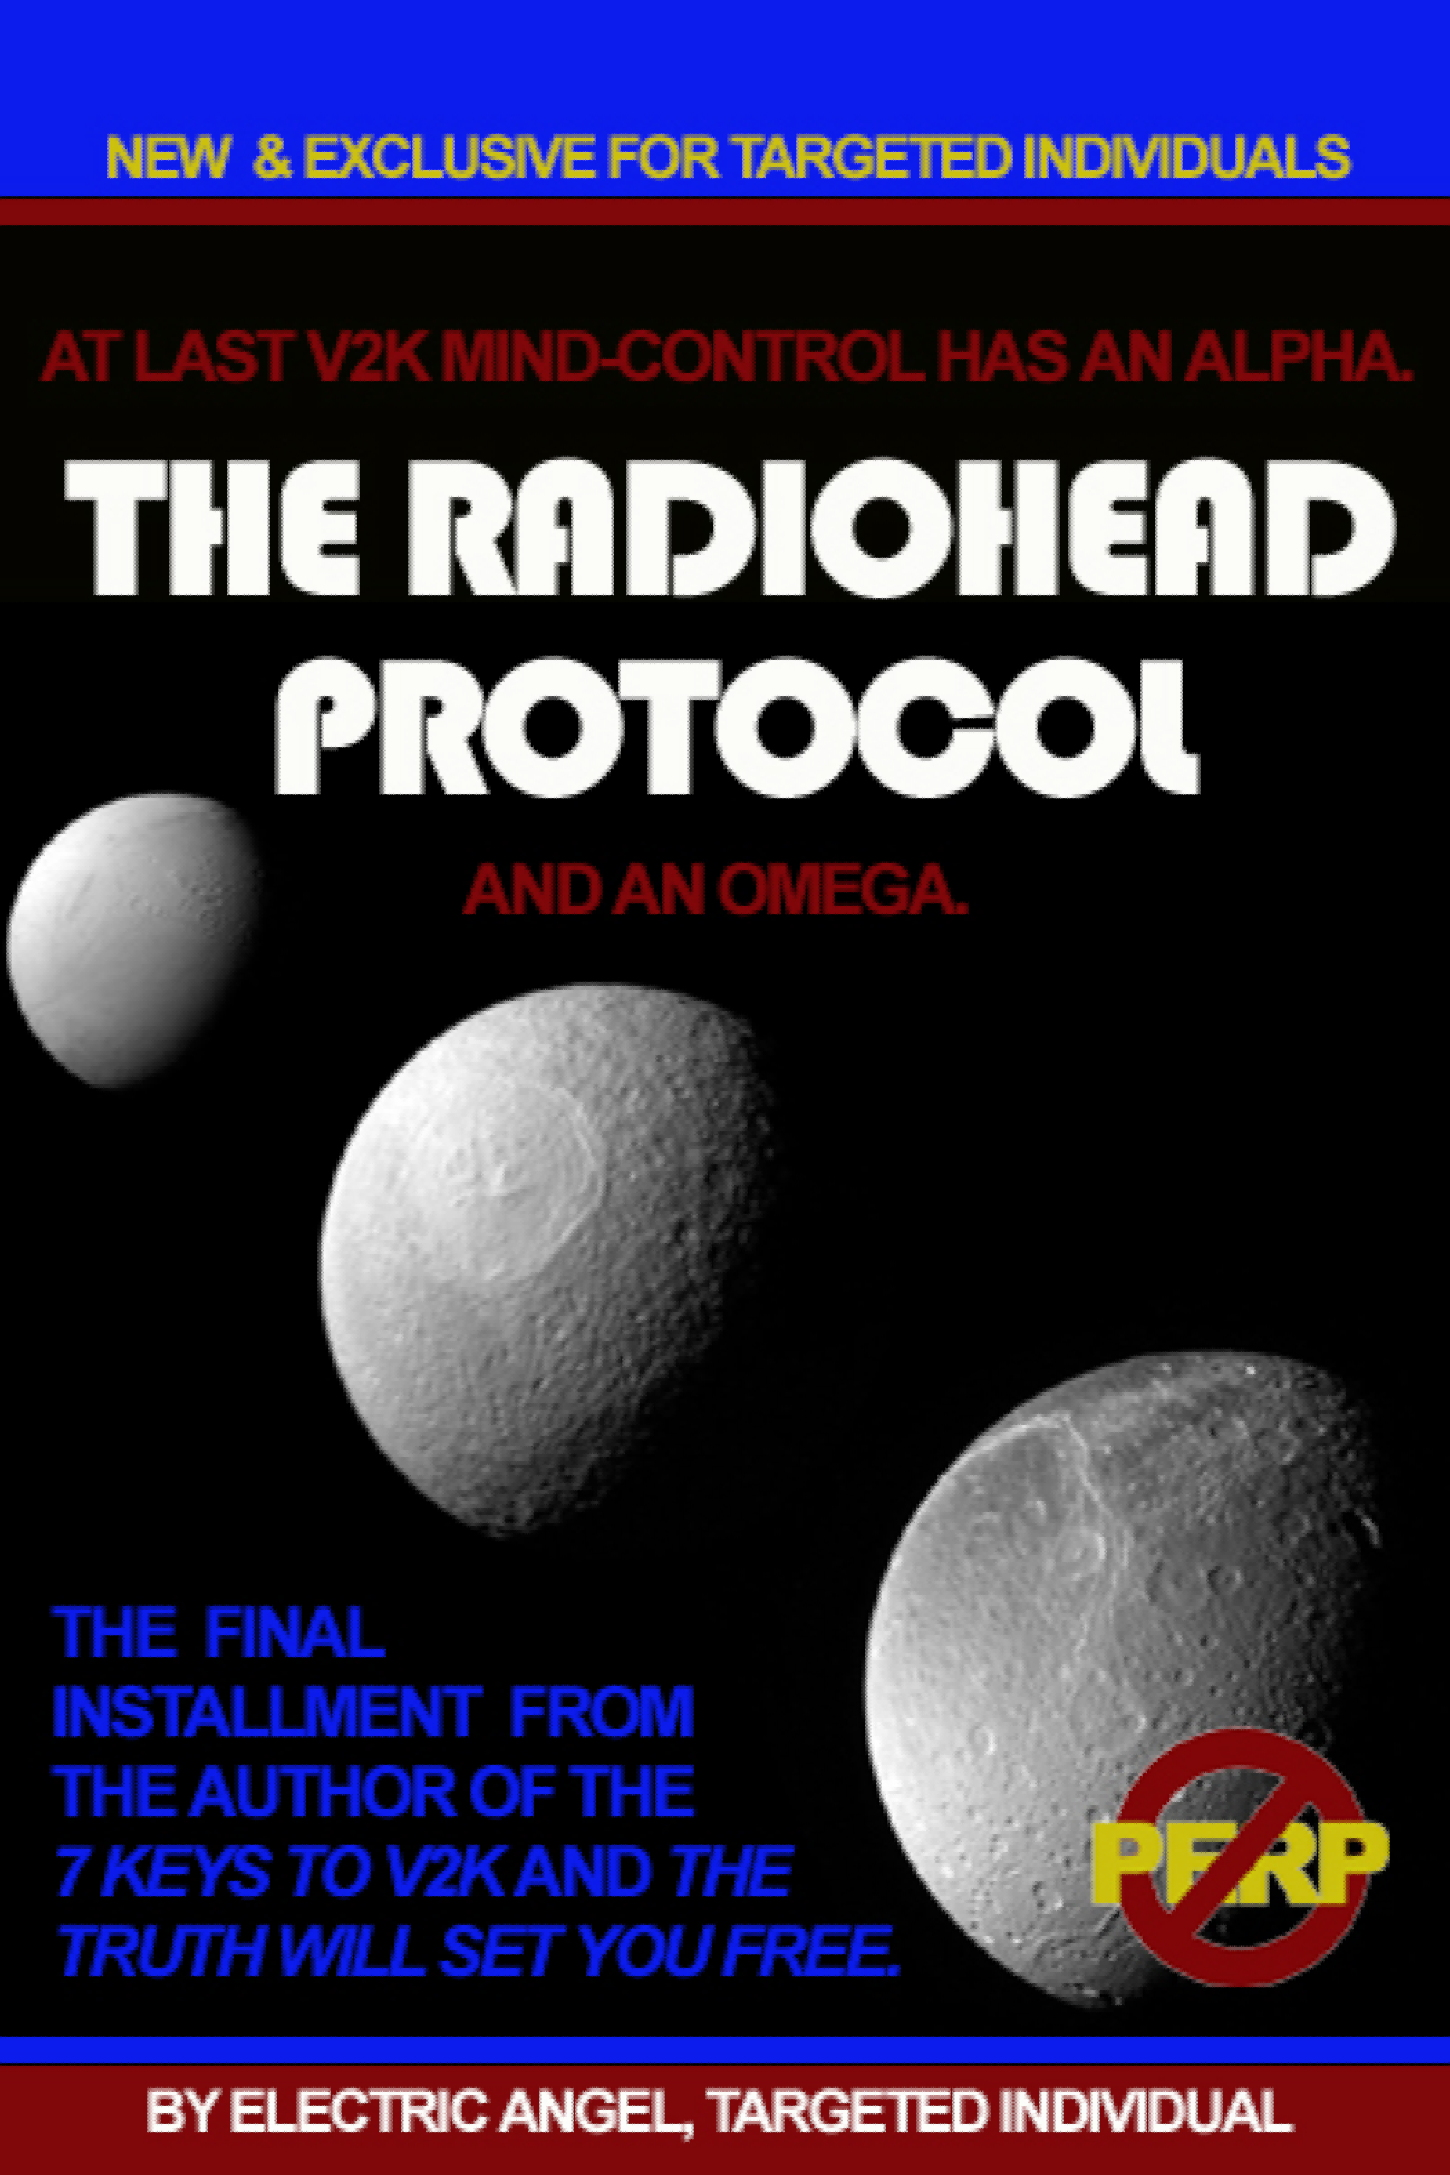 The Radiohead Protocol, an Ebook by Electric Angel